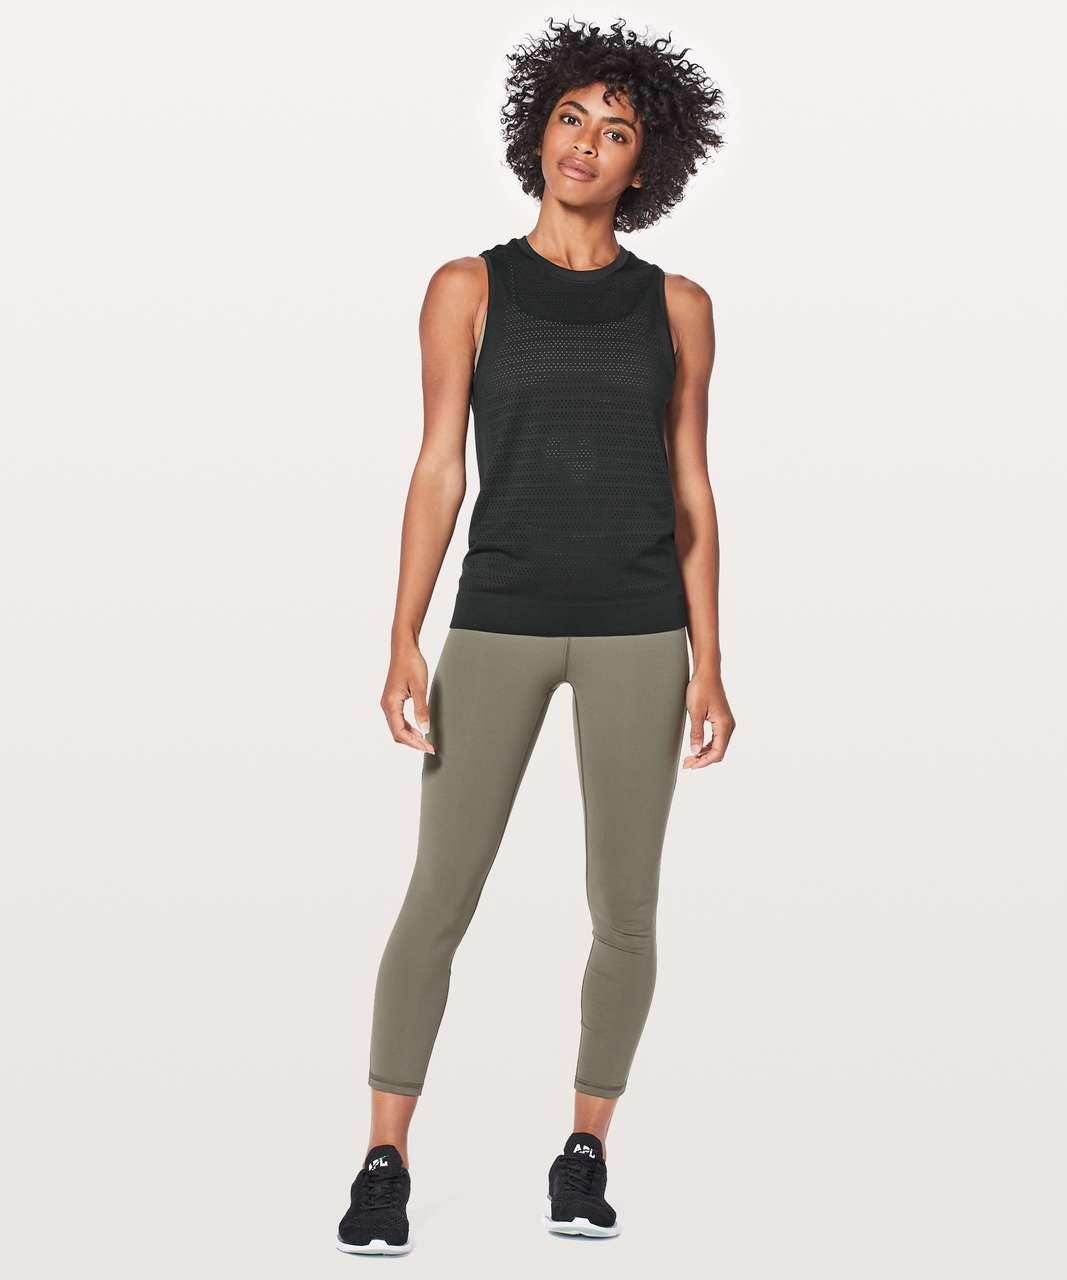 Lululemon Breeze By Muscle Tank II - Black / Black